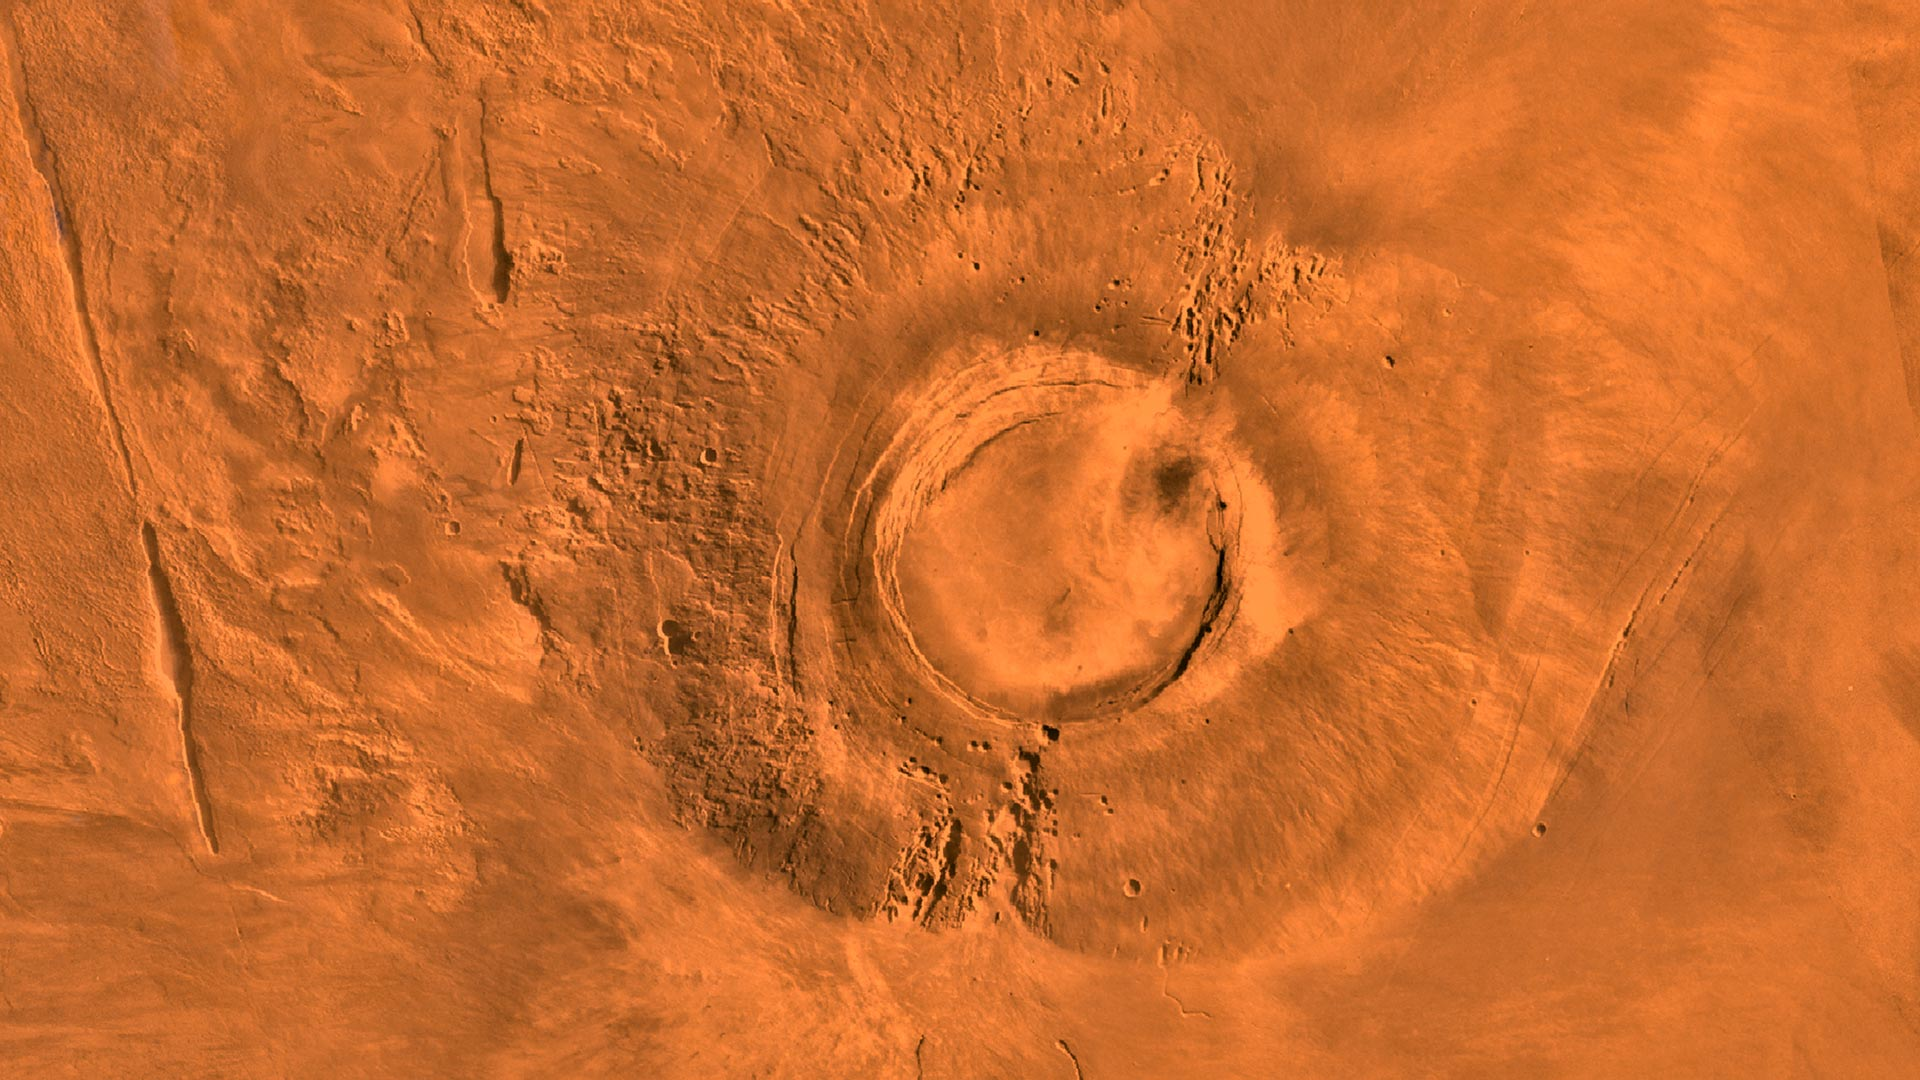 Mars surface crater hero